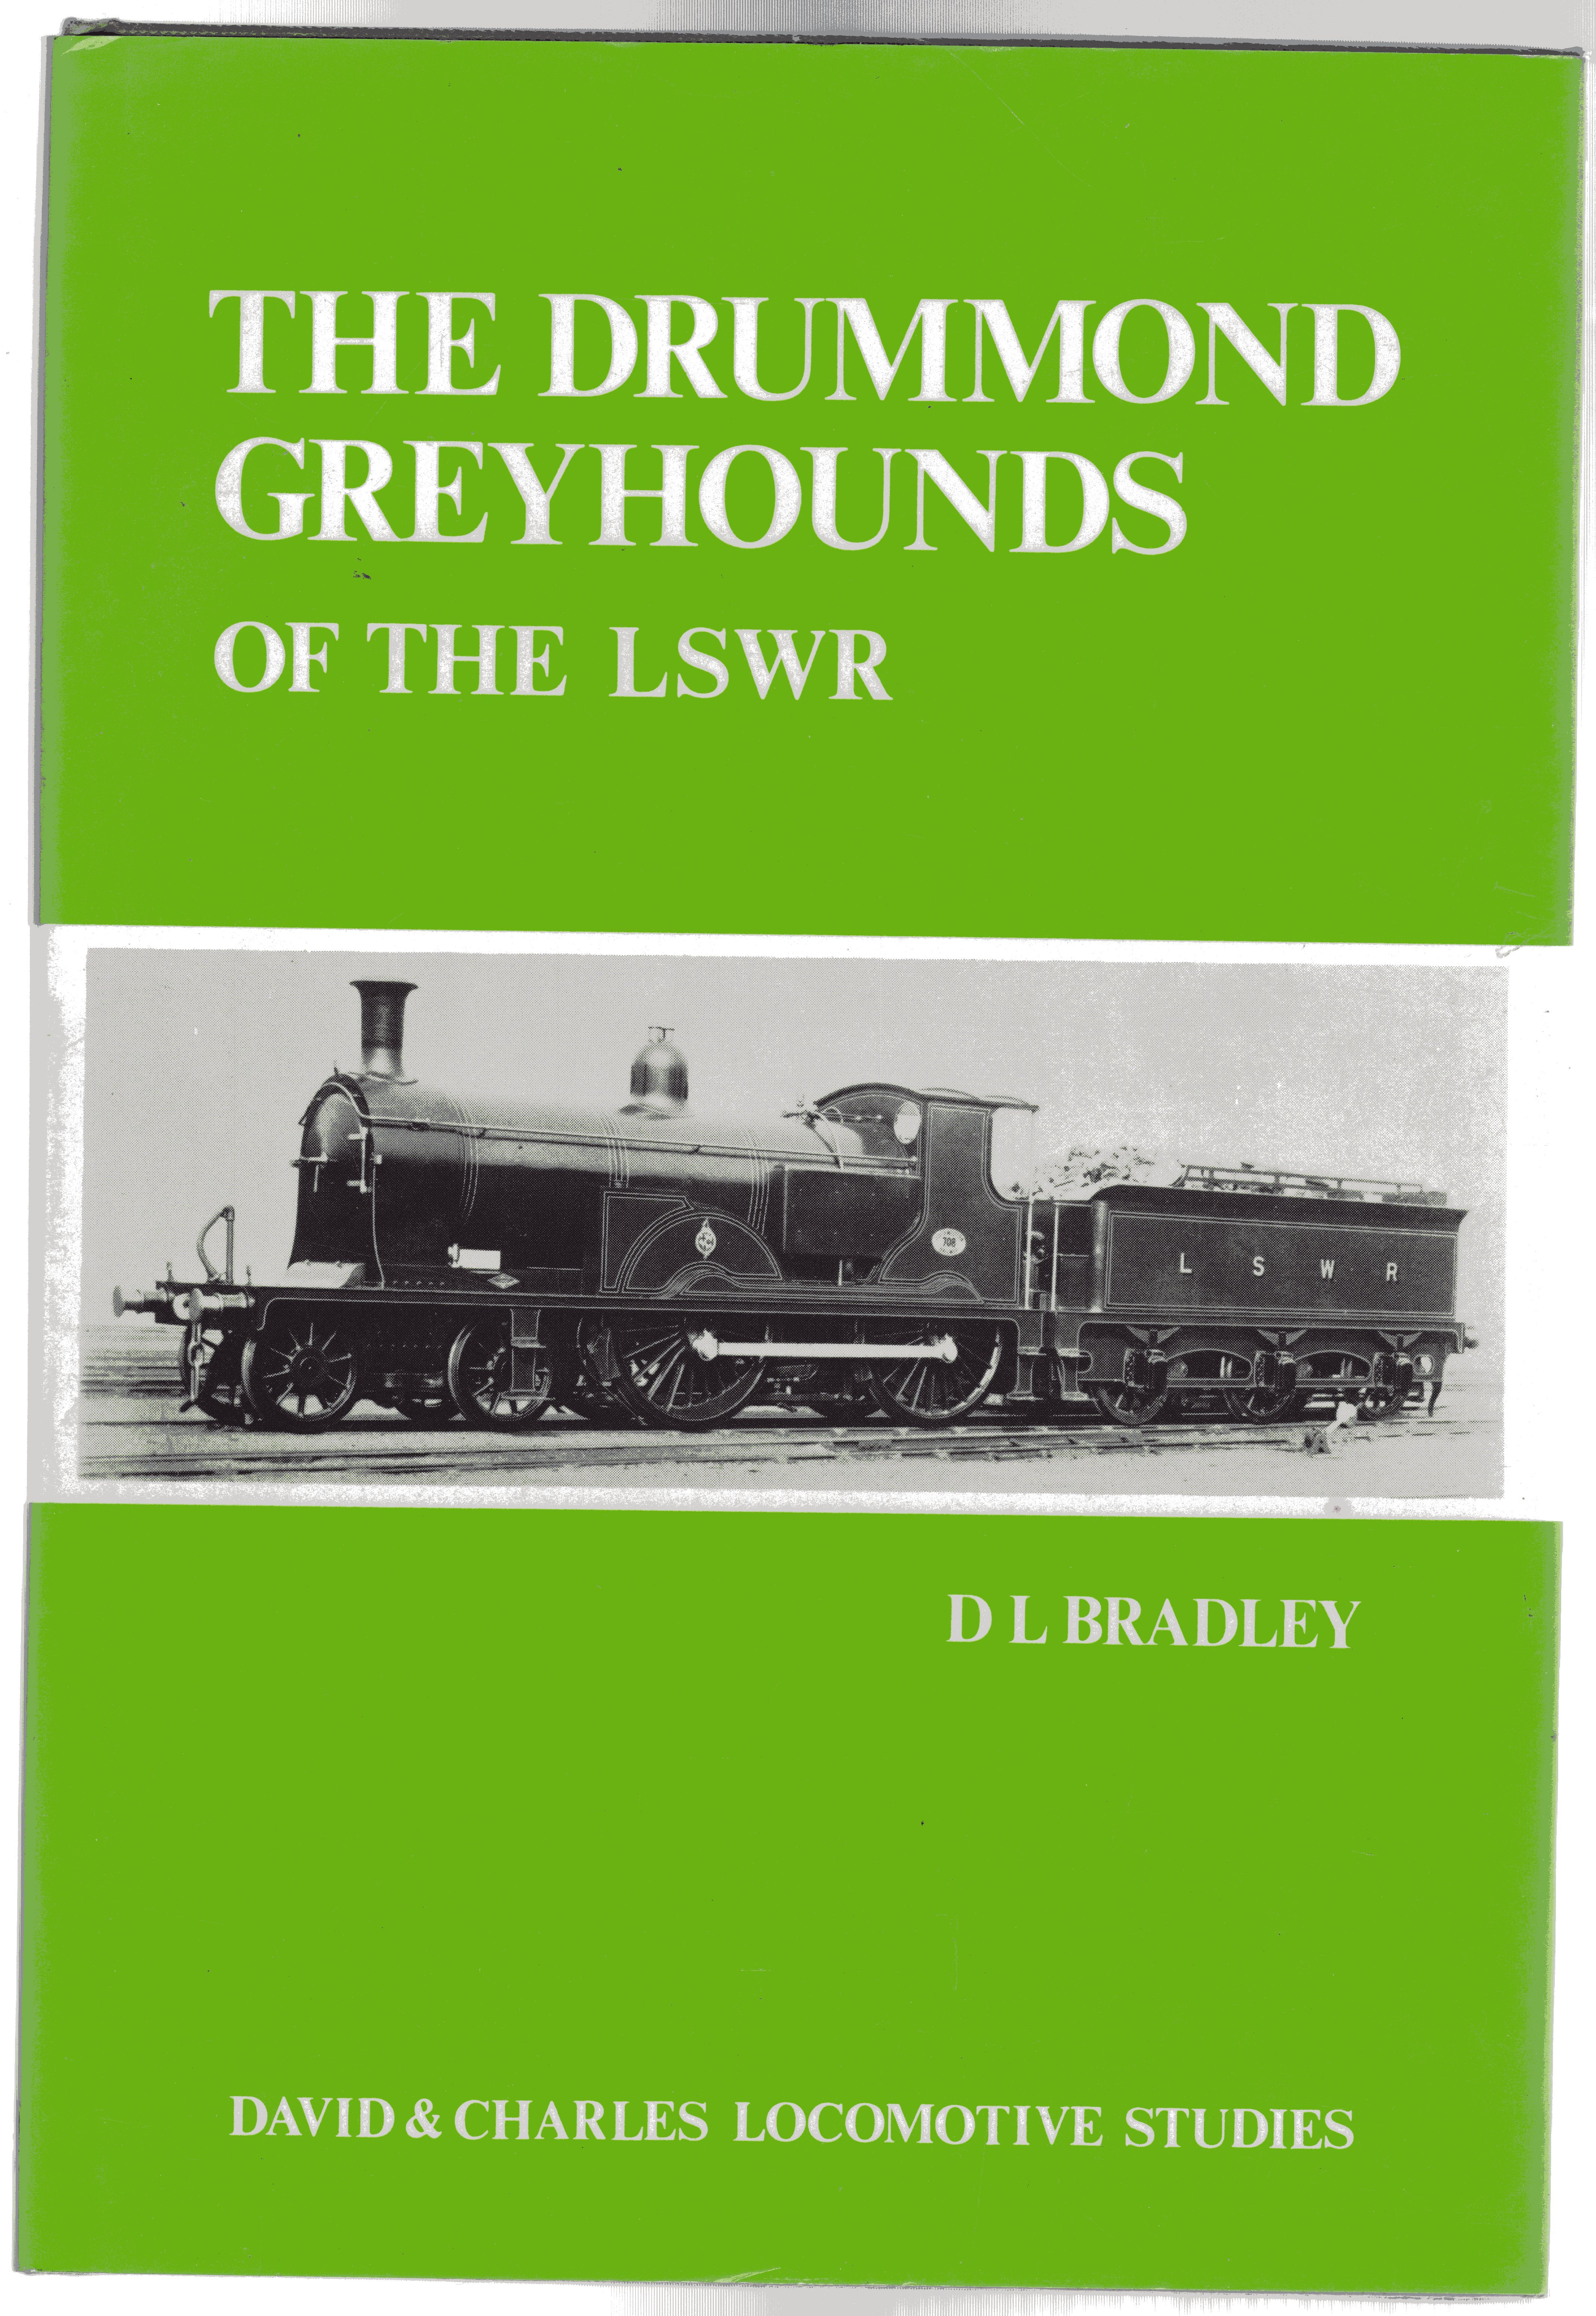 Image for The Drummond Greyhounds of the L.S.W.R.